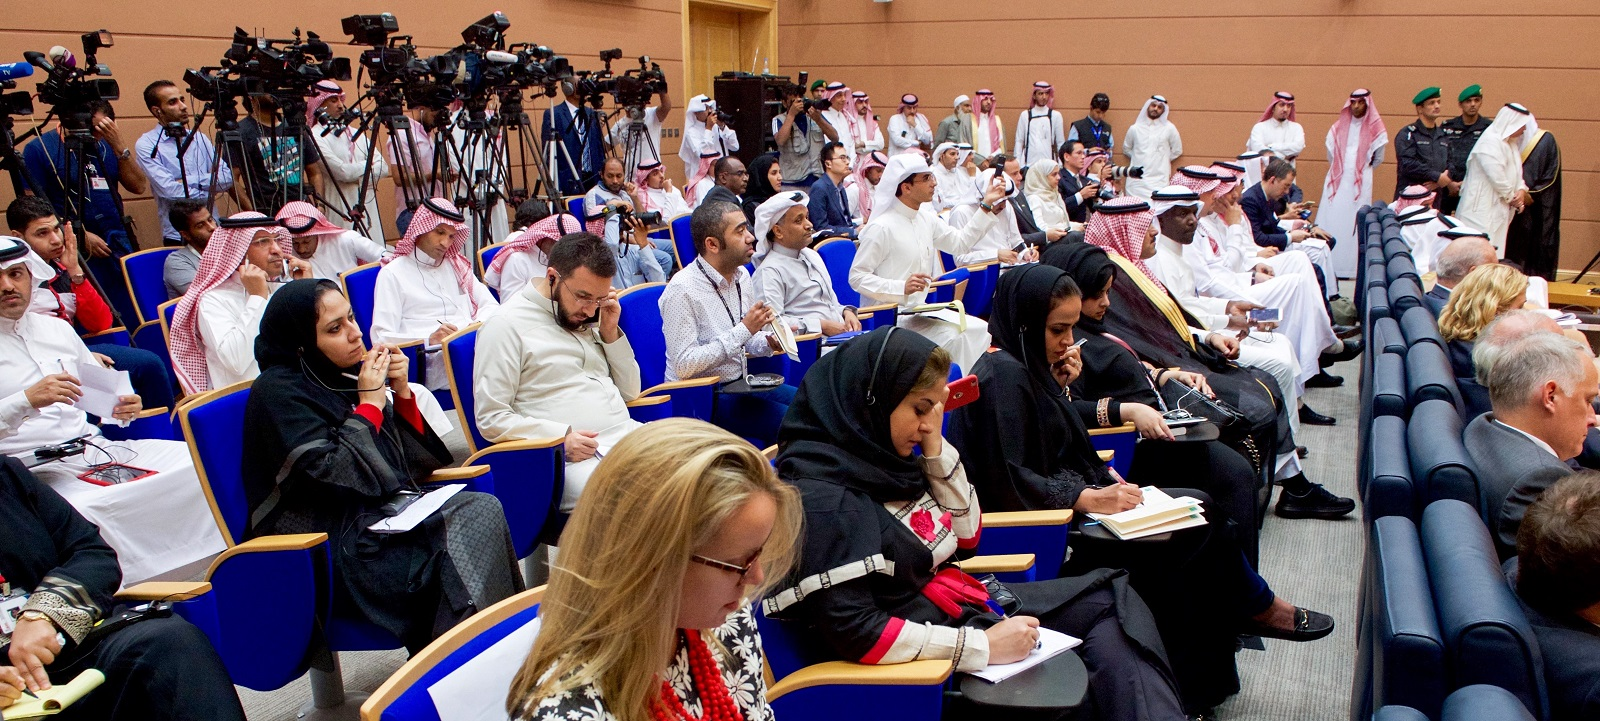 Reporters at a joint US/Saudi Arabia briefing on 25 August 2016 (Photo: US Dept of State)